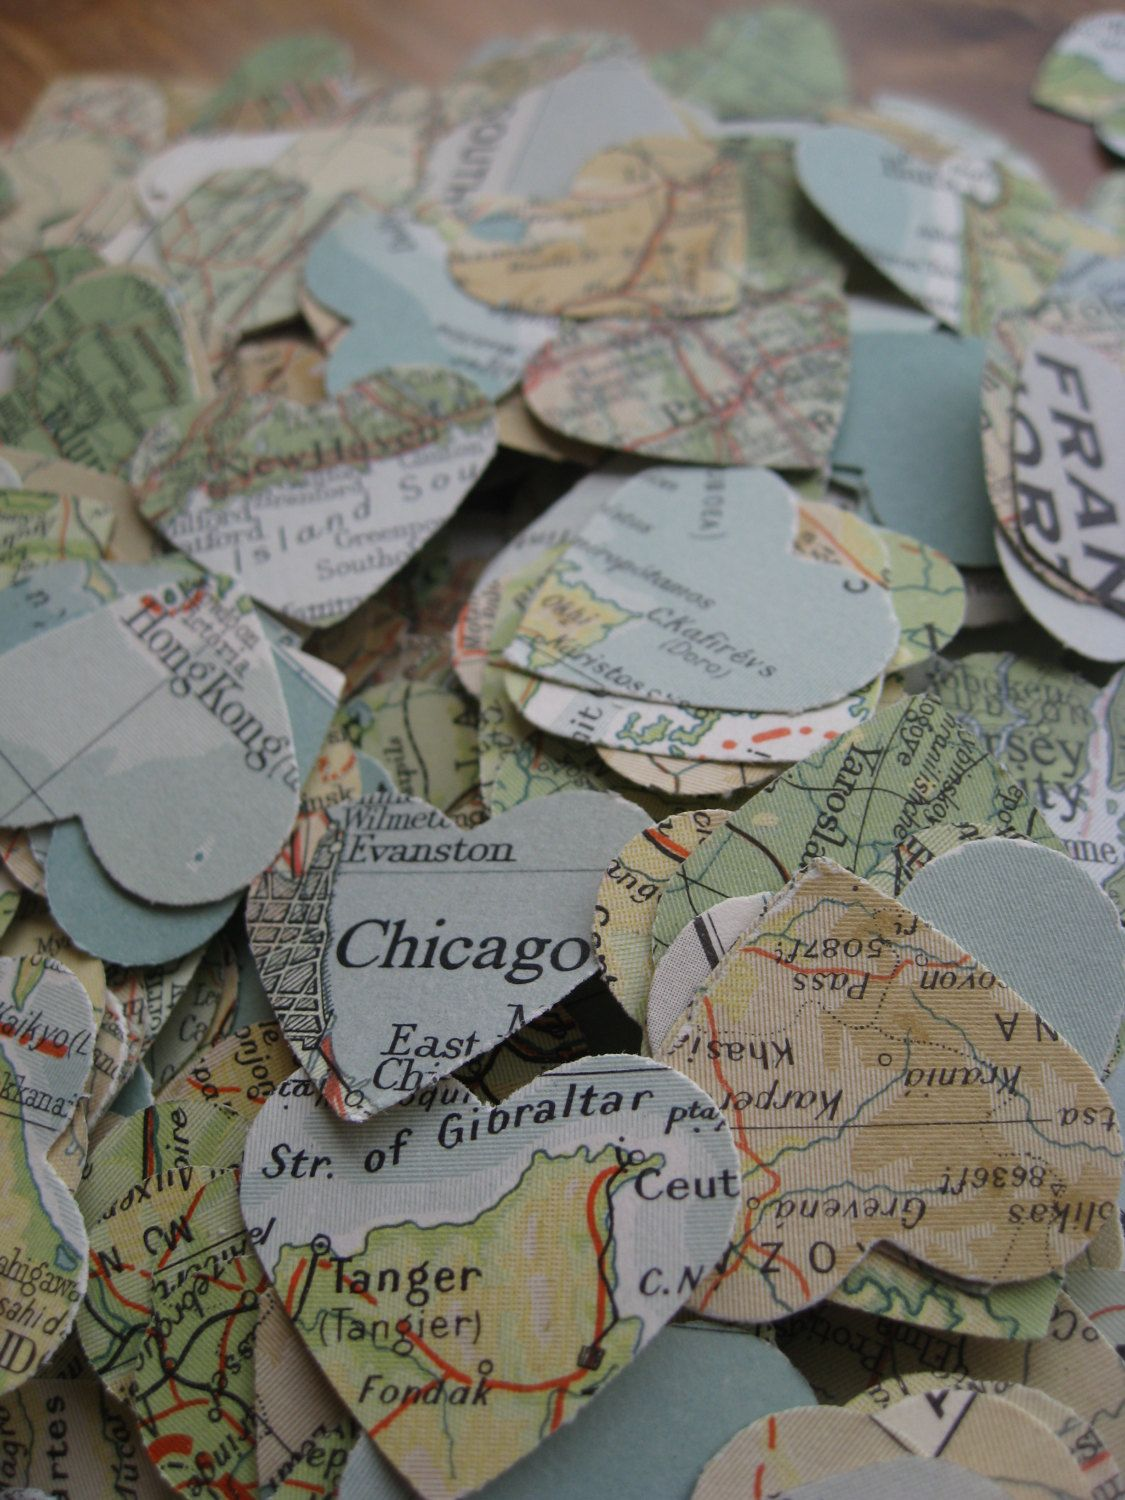 1000 vintage map confetti teal ivory ochre beige green world 1000 vintage map confetti teal ivory ochre beige green world map or choose your map heart shaped custom orders welcome by treetownpaper on etsy gumiabroncs Images